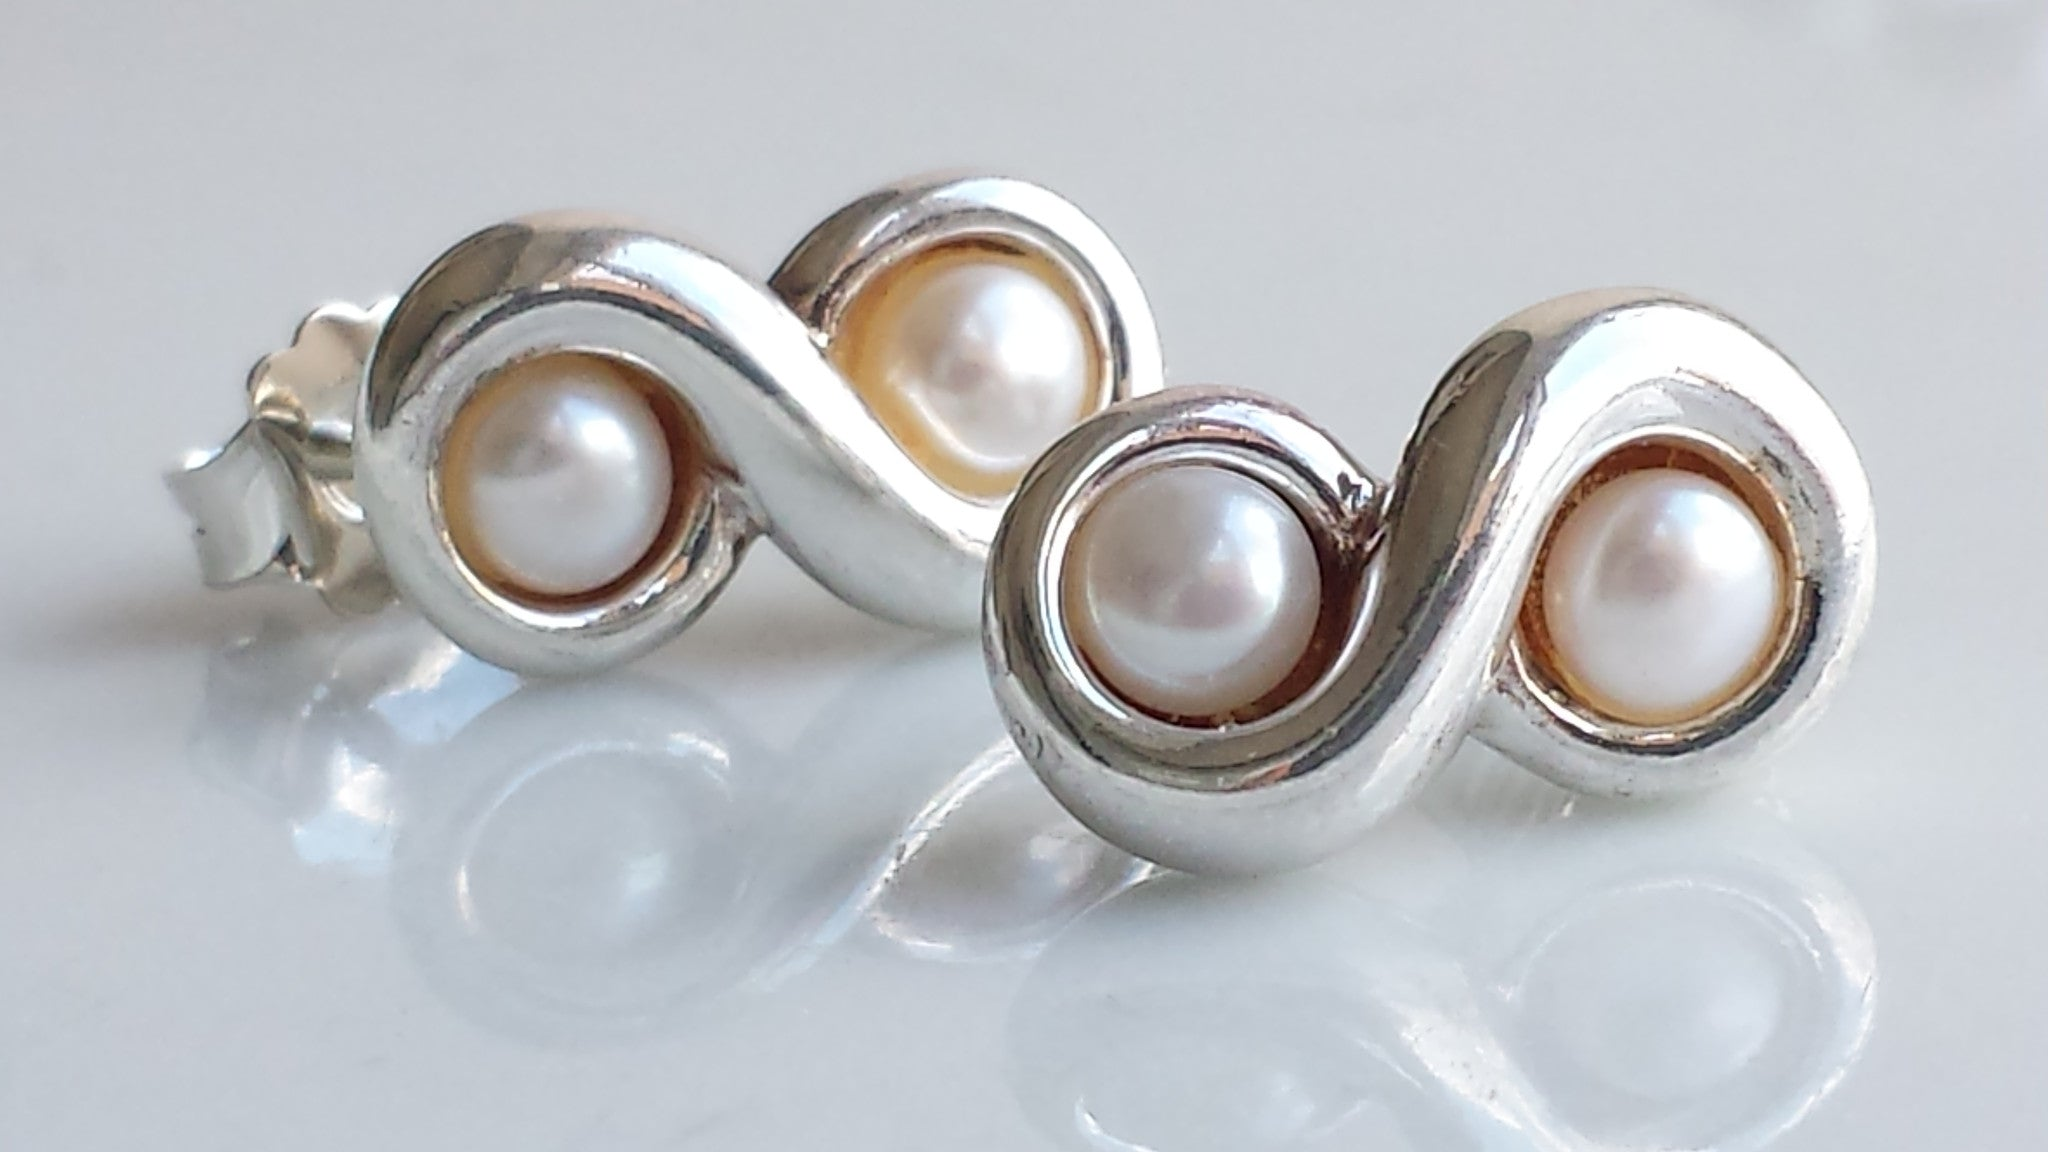 d46bec232 Tiffany & Co. Vintage Freshwater Pearl Sterling Silver Infinity (8) St -  Bloomsbury Manor Ltd